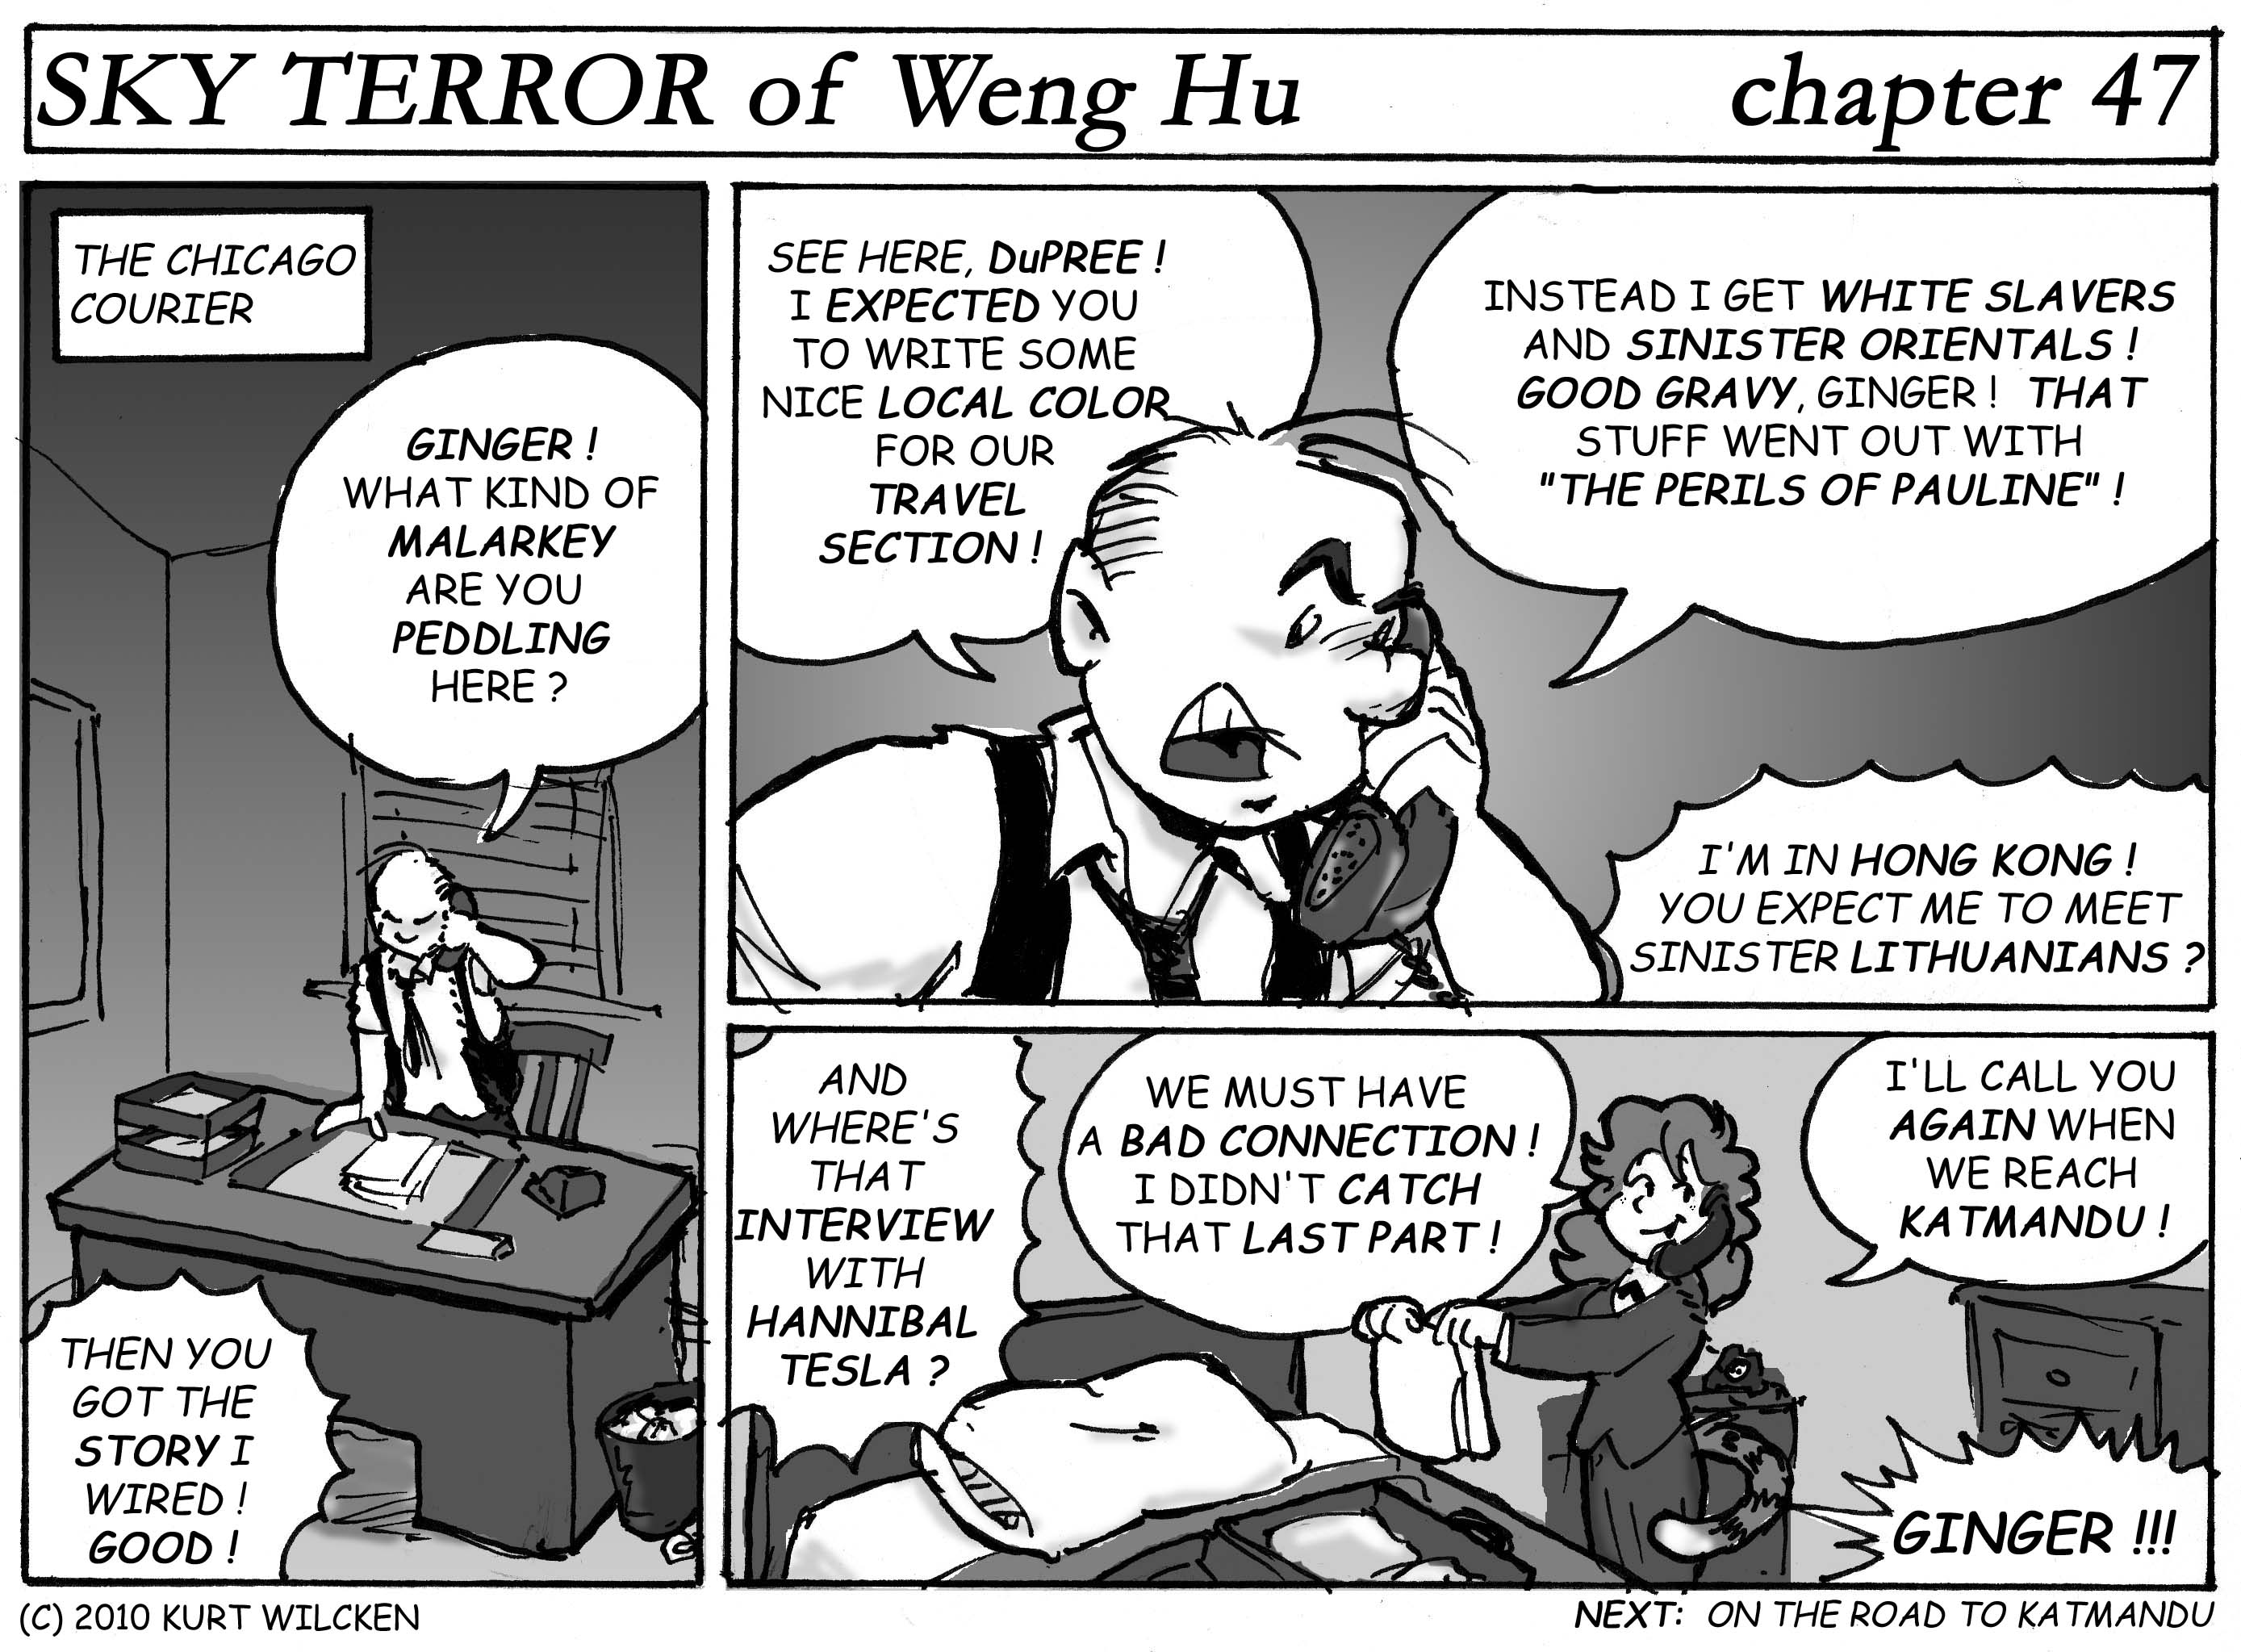 SKY TERROR of Weng Hu:  Chapter 47 — Back In Chicago